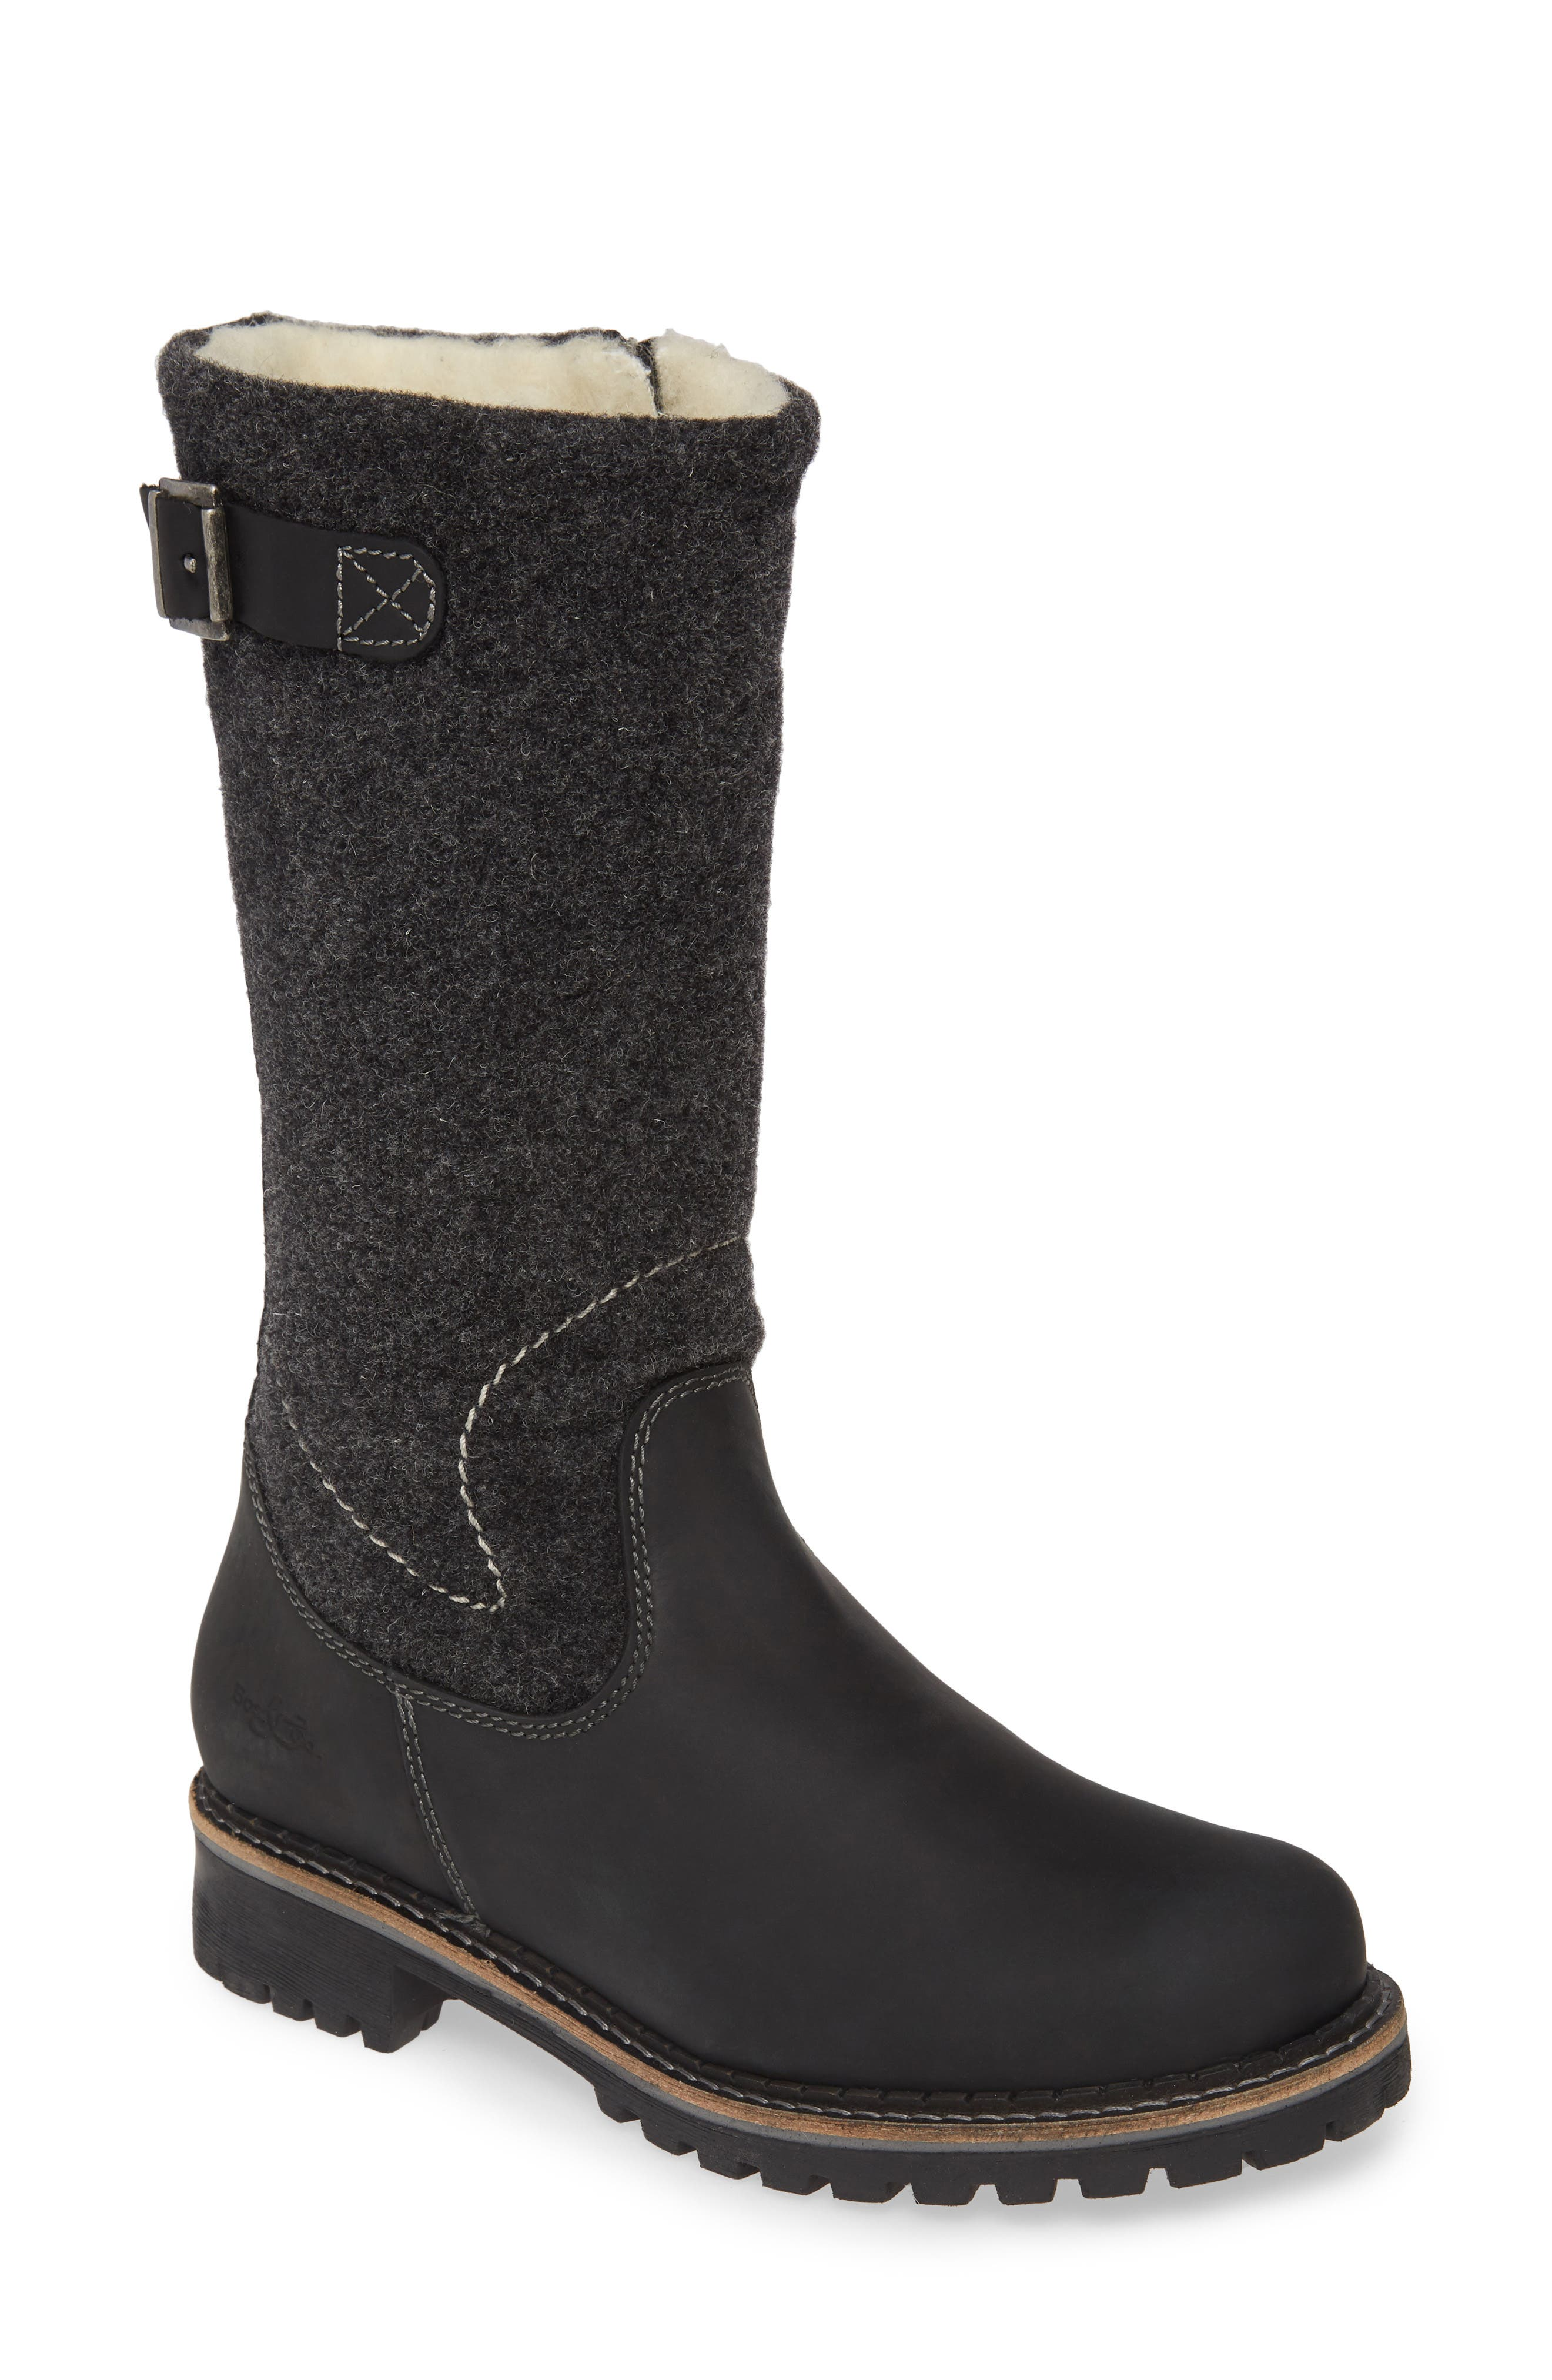 A boiled-wool shaft blocks chilly breezes while an Aquastop breathable, water-repellent membrane helps keep feet dry in wet weather. A plush merino wool lining ensures toes stay toasty warm, and the chunky, lugged platform sole provides exceptional traction in icy or snowy conditions. Style Name: Bos. & Co. Hammond Waterproof Boot (Women). Style Number: 5871706. Available in stores.